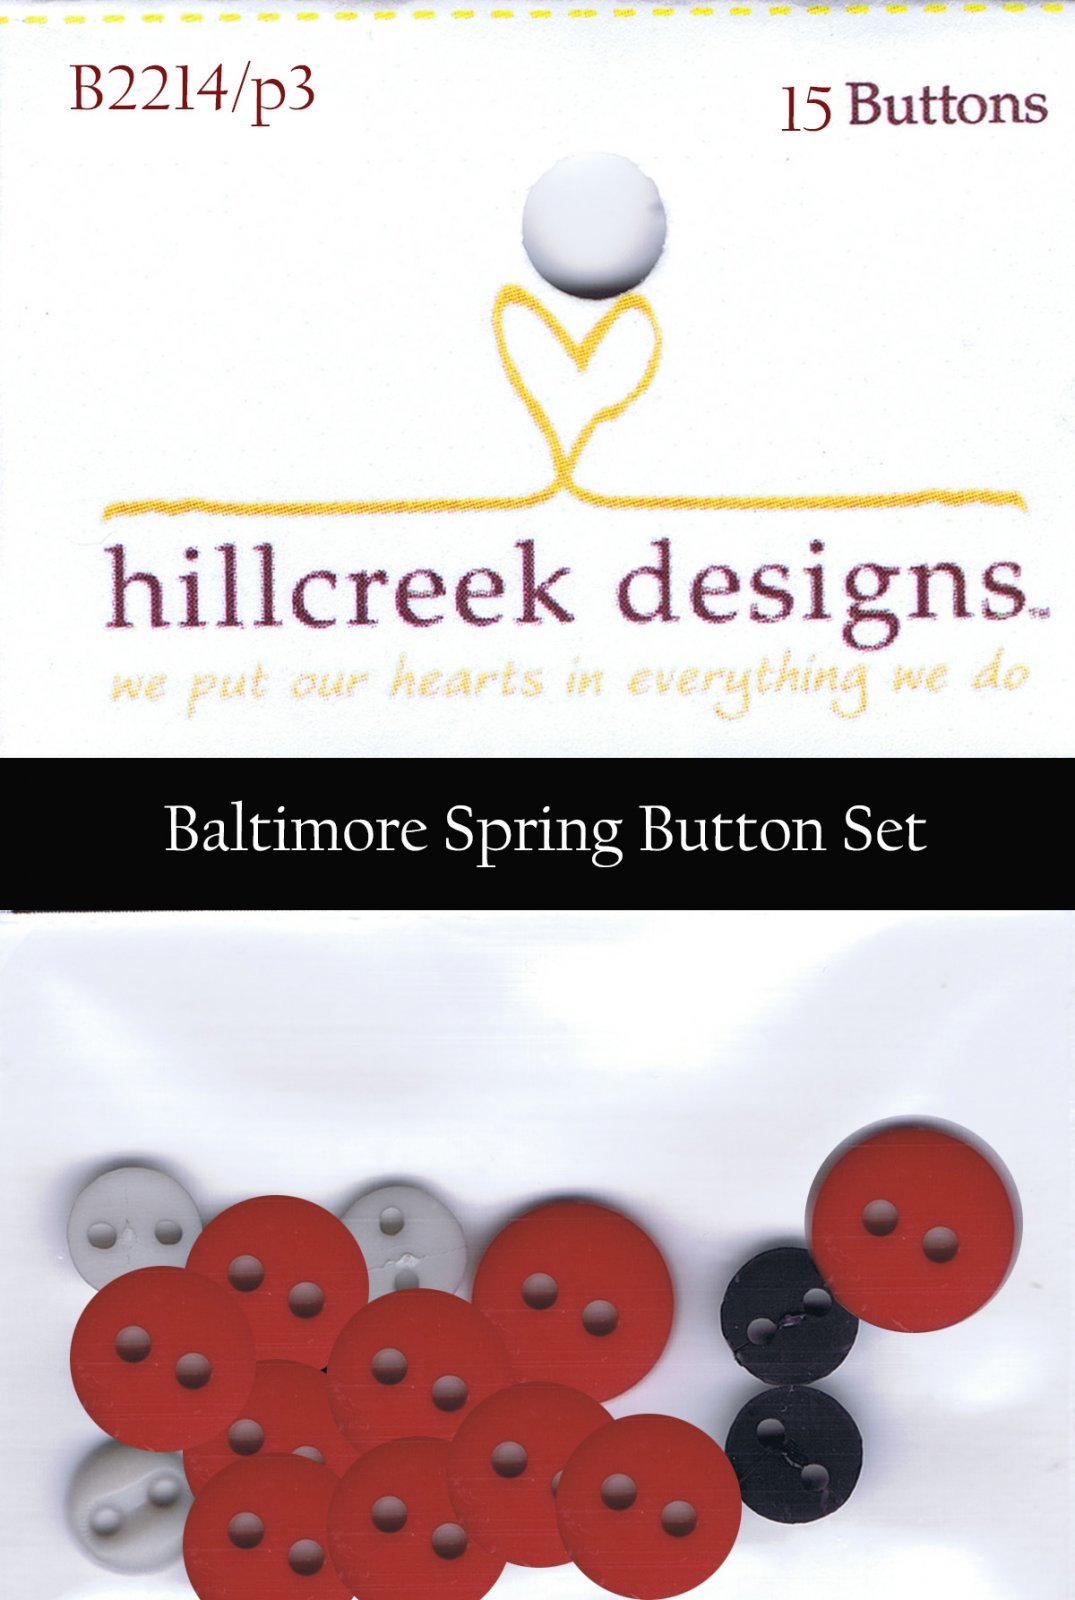 P3-171-1 Spring Bouquet Wall-Hanging Button Set